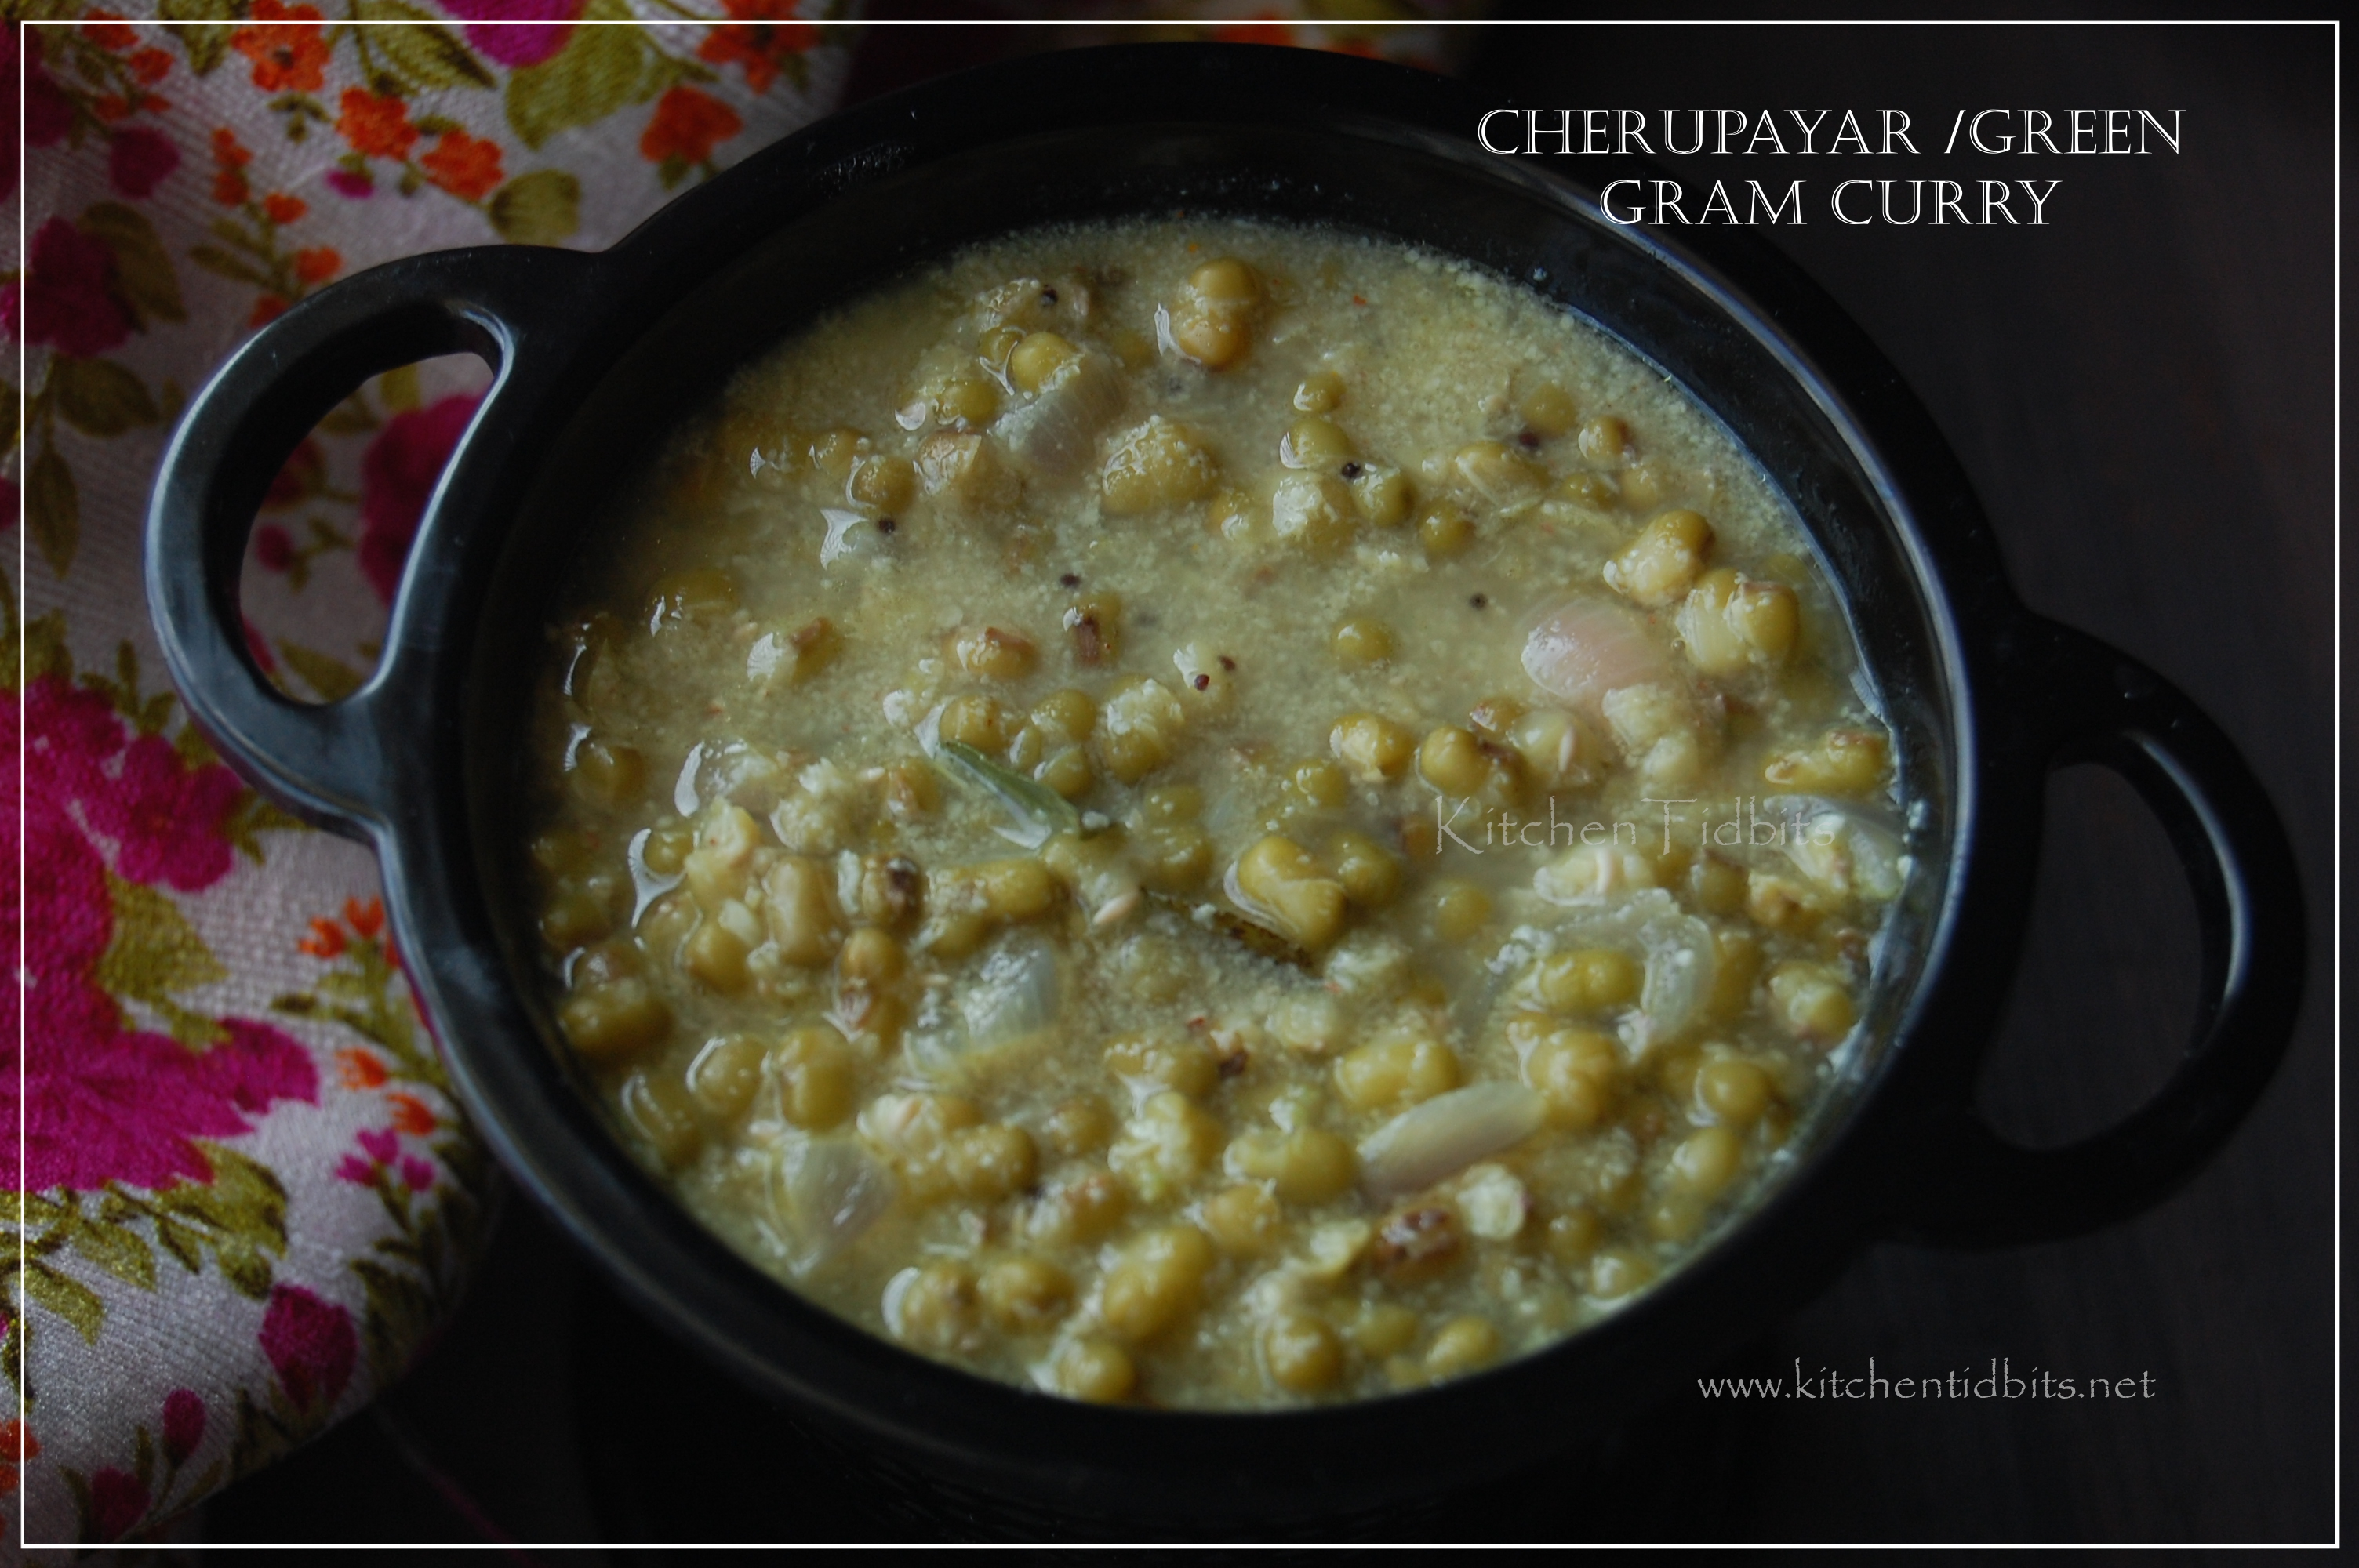 Cherupayar /green gram curry